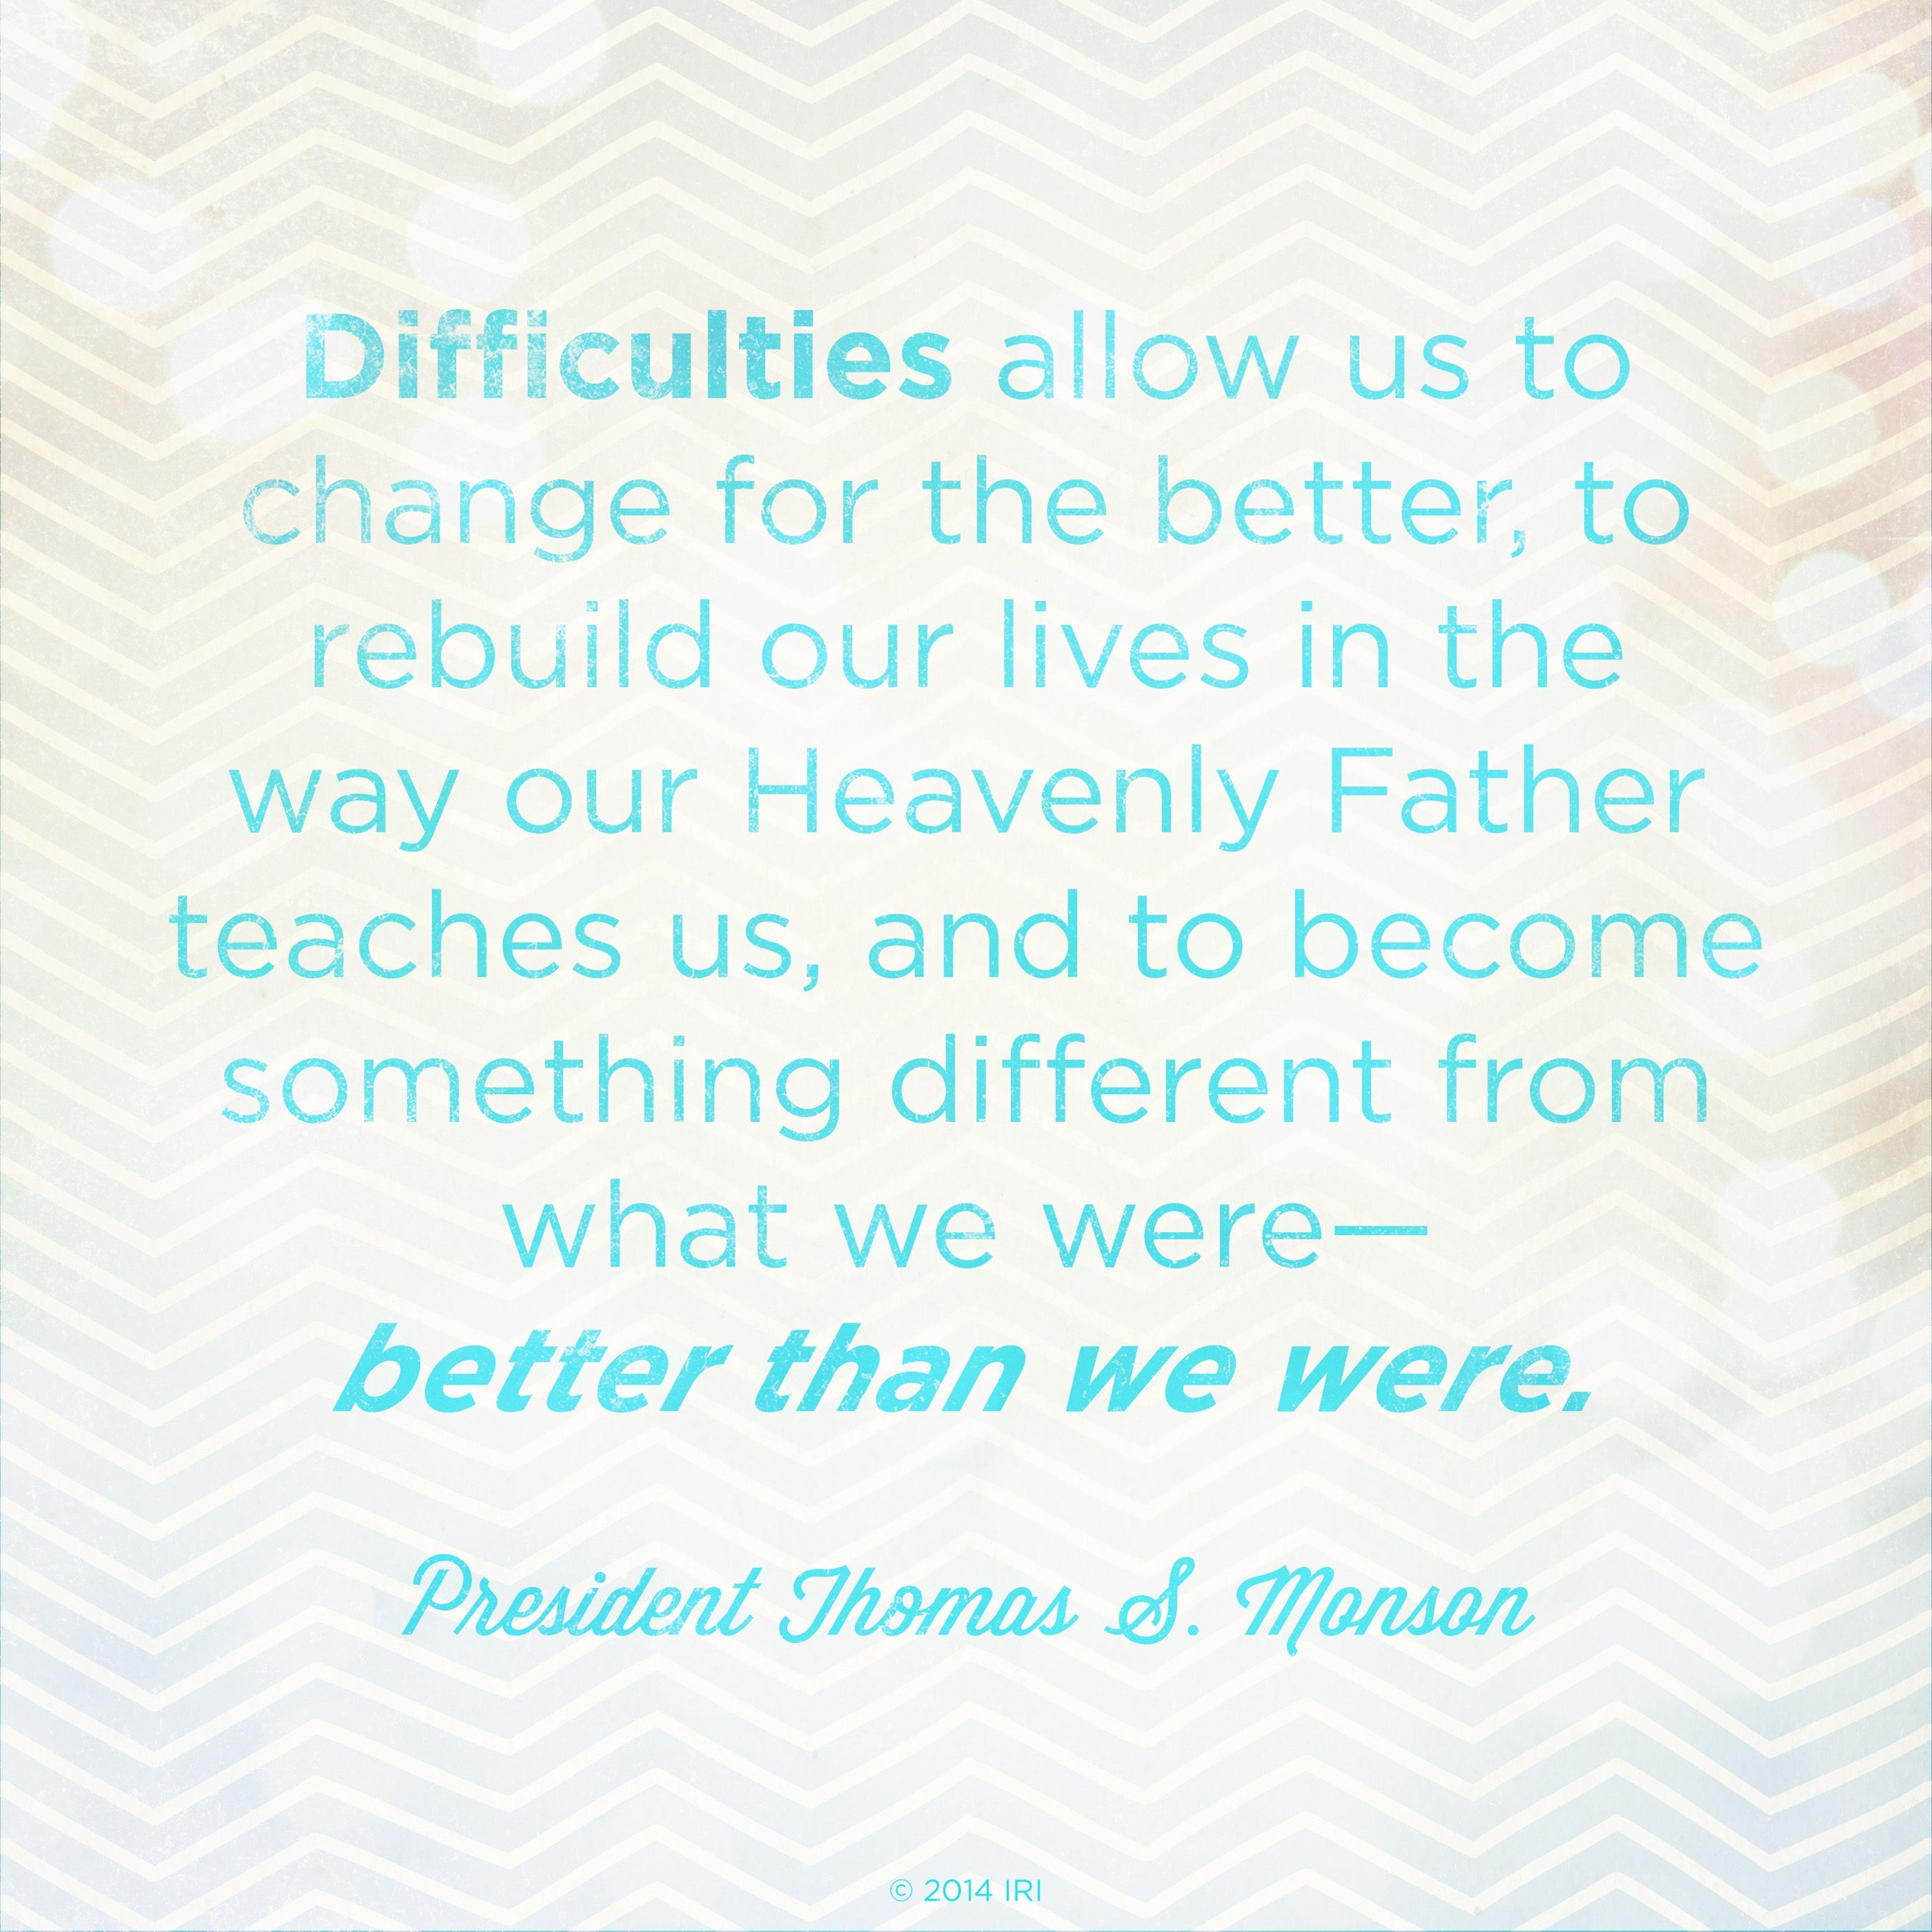 """""""Difficulties allow us to change for the better, to rebuild our lives in the way our Heavenly Father teaches us, and to become something different from what we were—better than we were.""""—President Thomas S. Monson, """"I Will Not Fail Thee, nor Forsake Thee"""""""